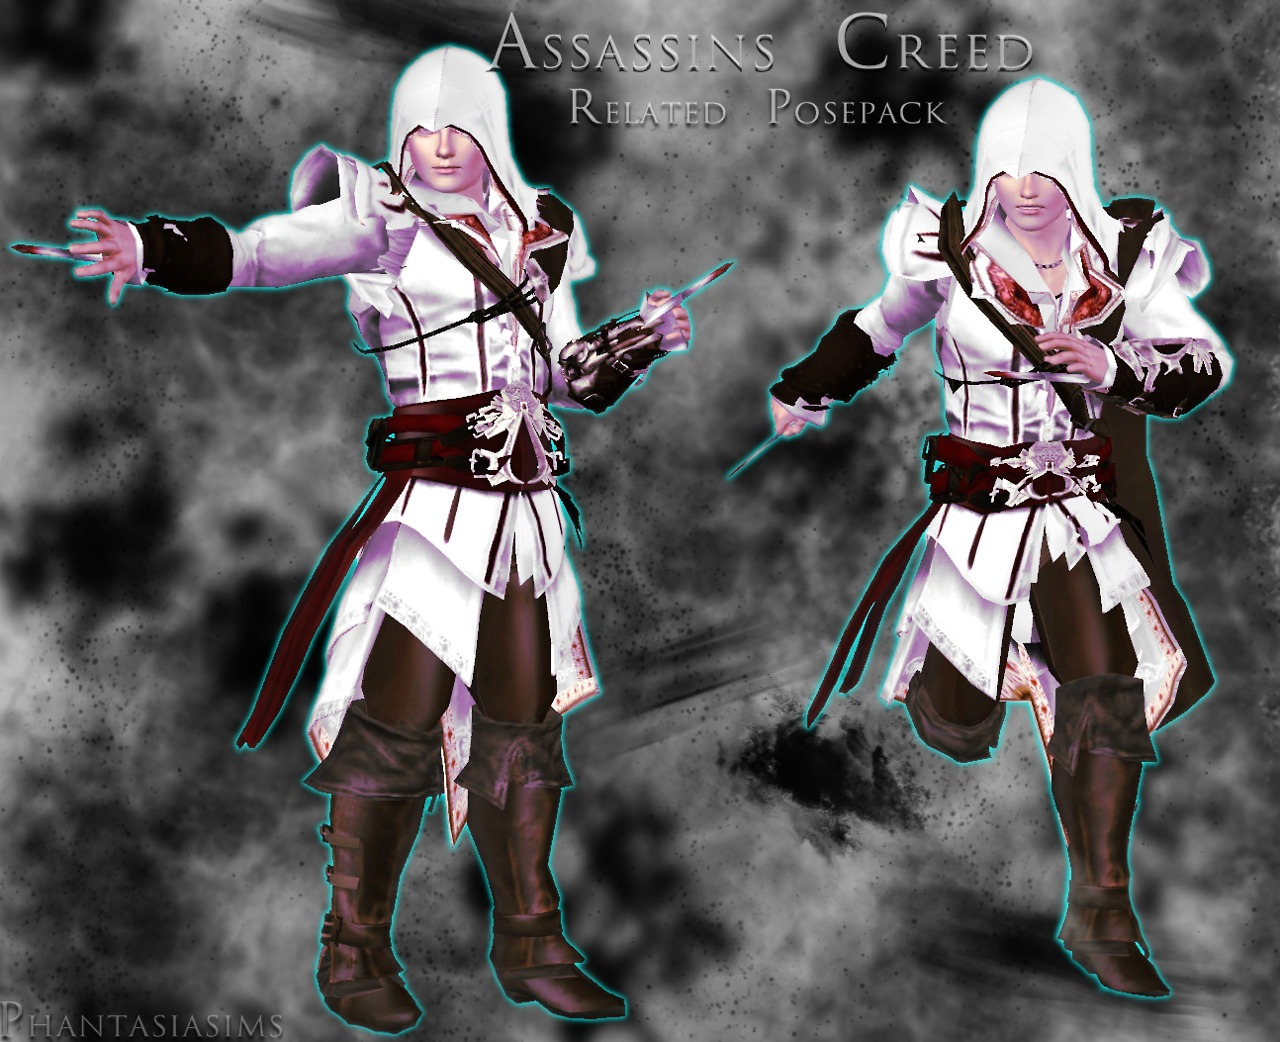 Assassins Creed Related Poses - Posepack by Jassi